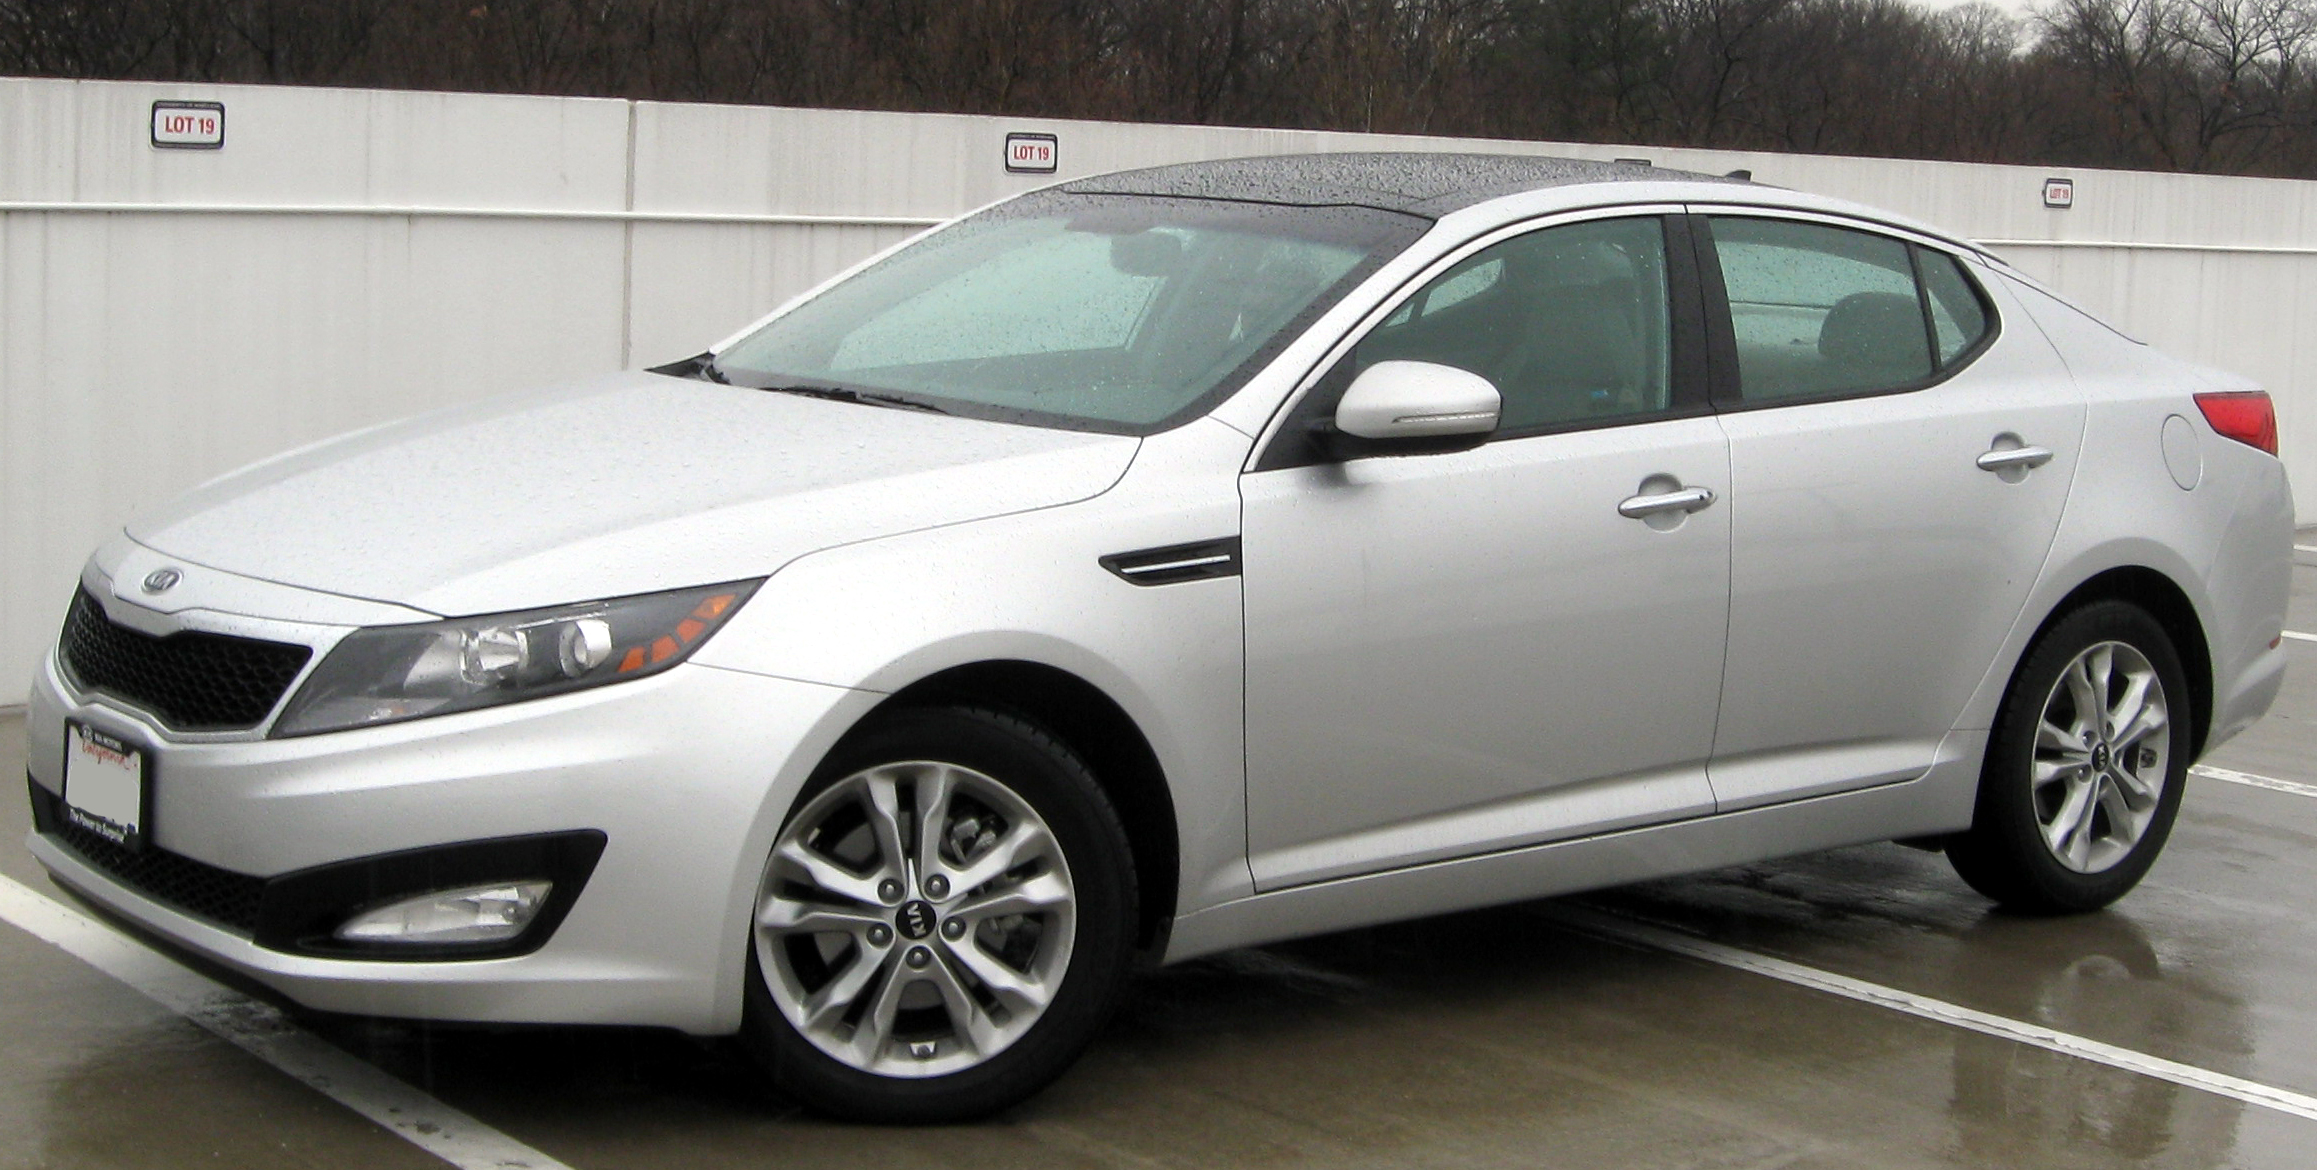 Description 2011 Kia Optima EX -- 02-28-2011.jpg